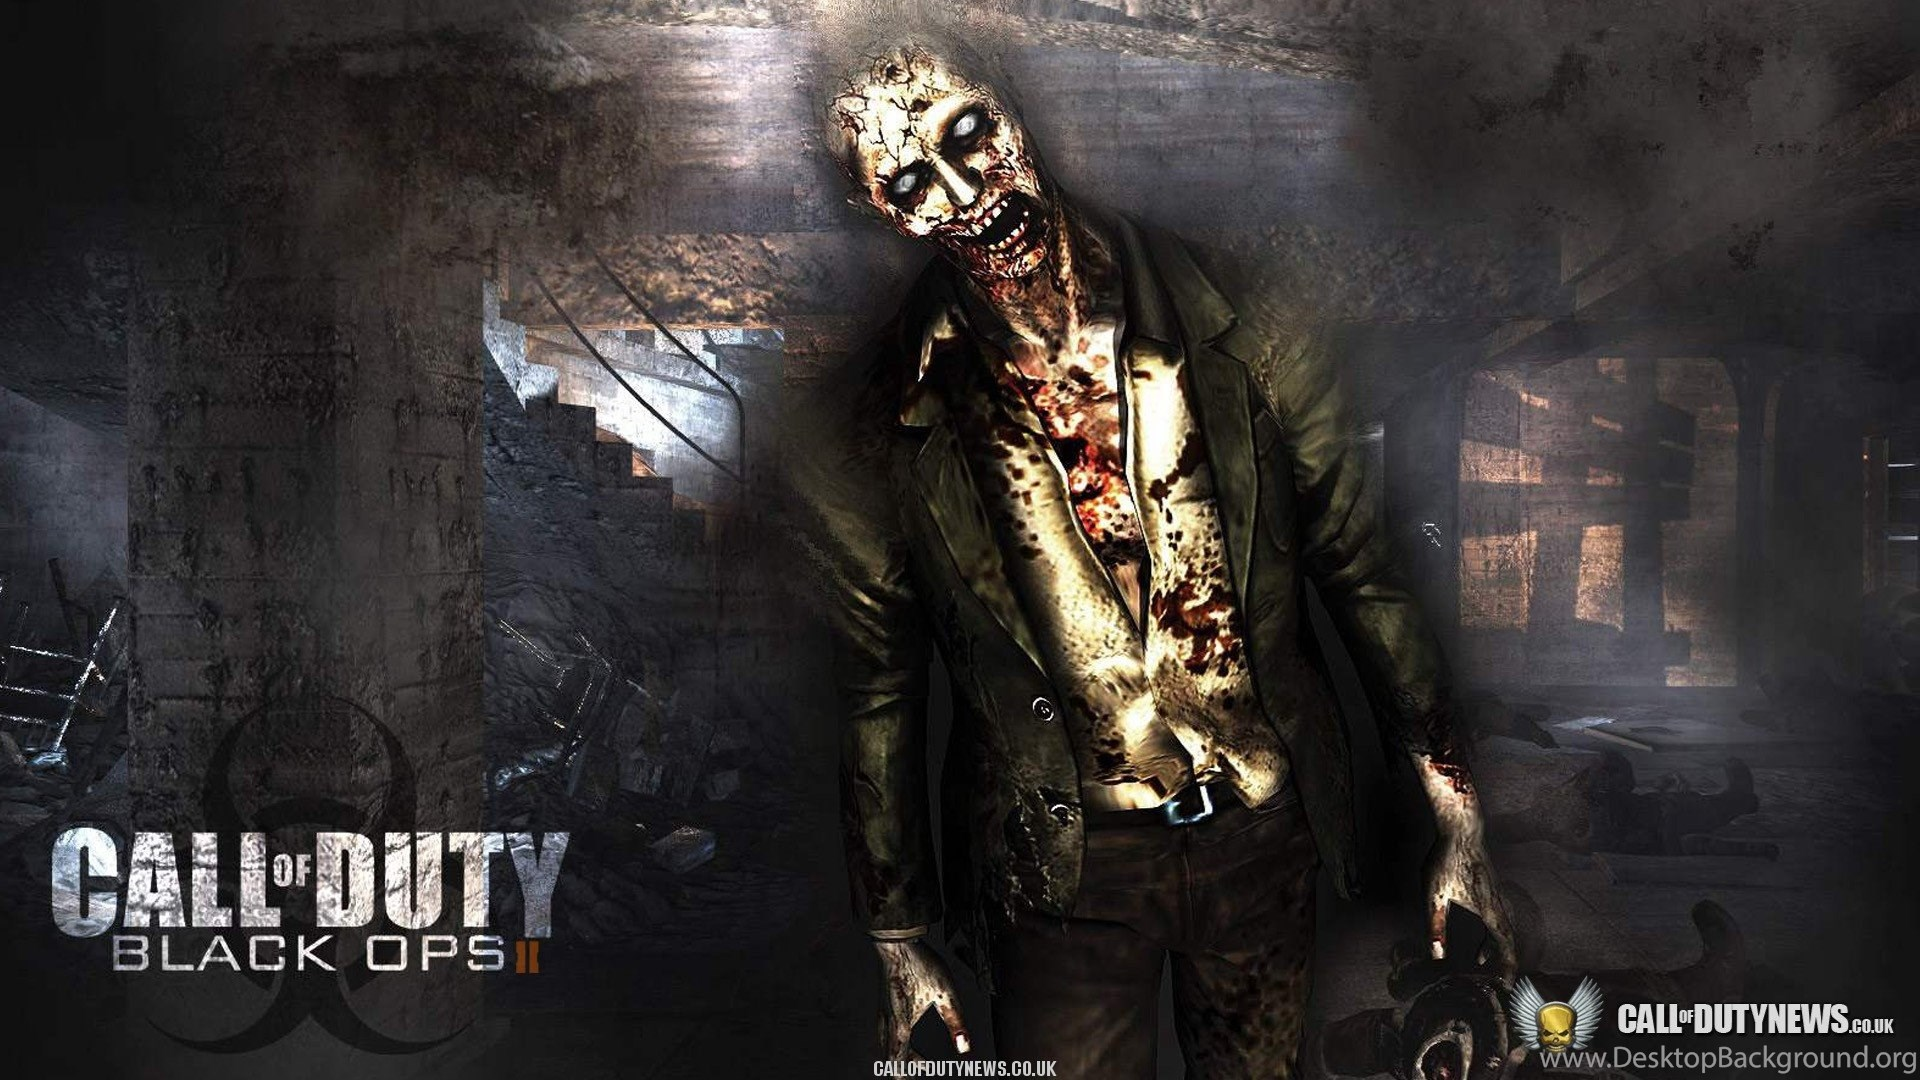 Black Ops 2 Wallpaper 71 Zombie Desktop Background